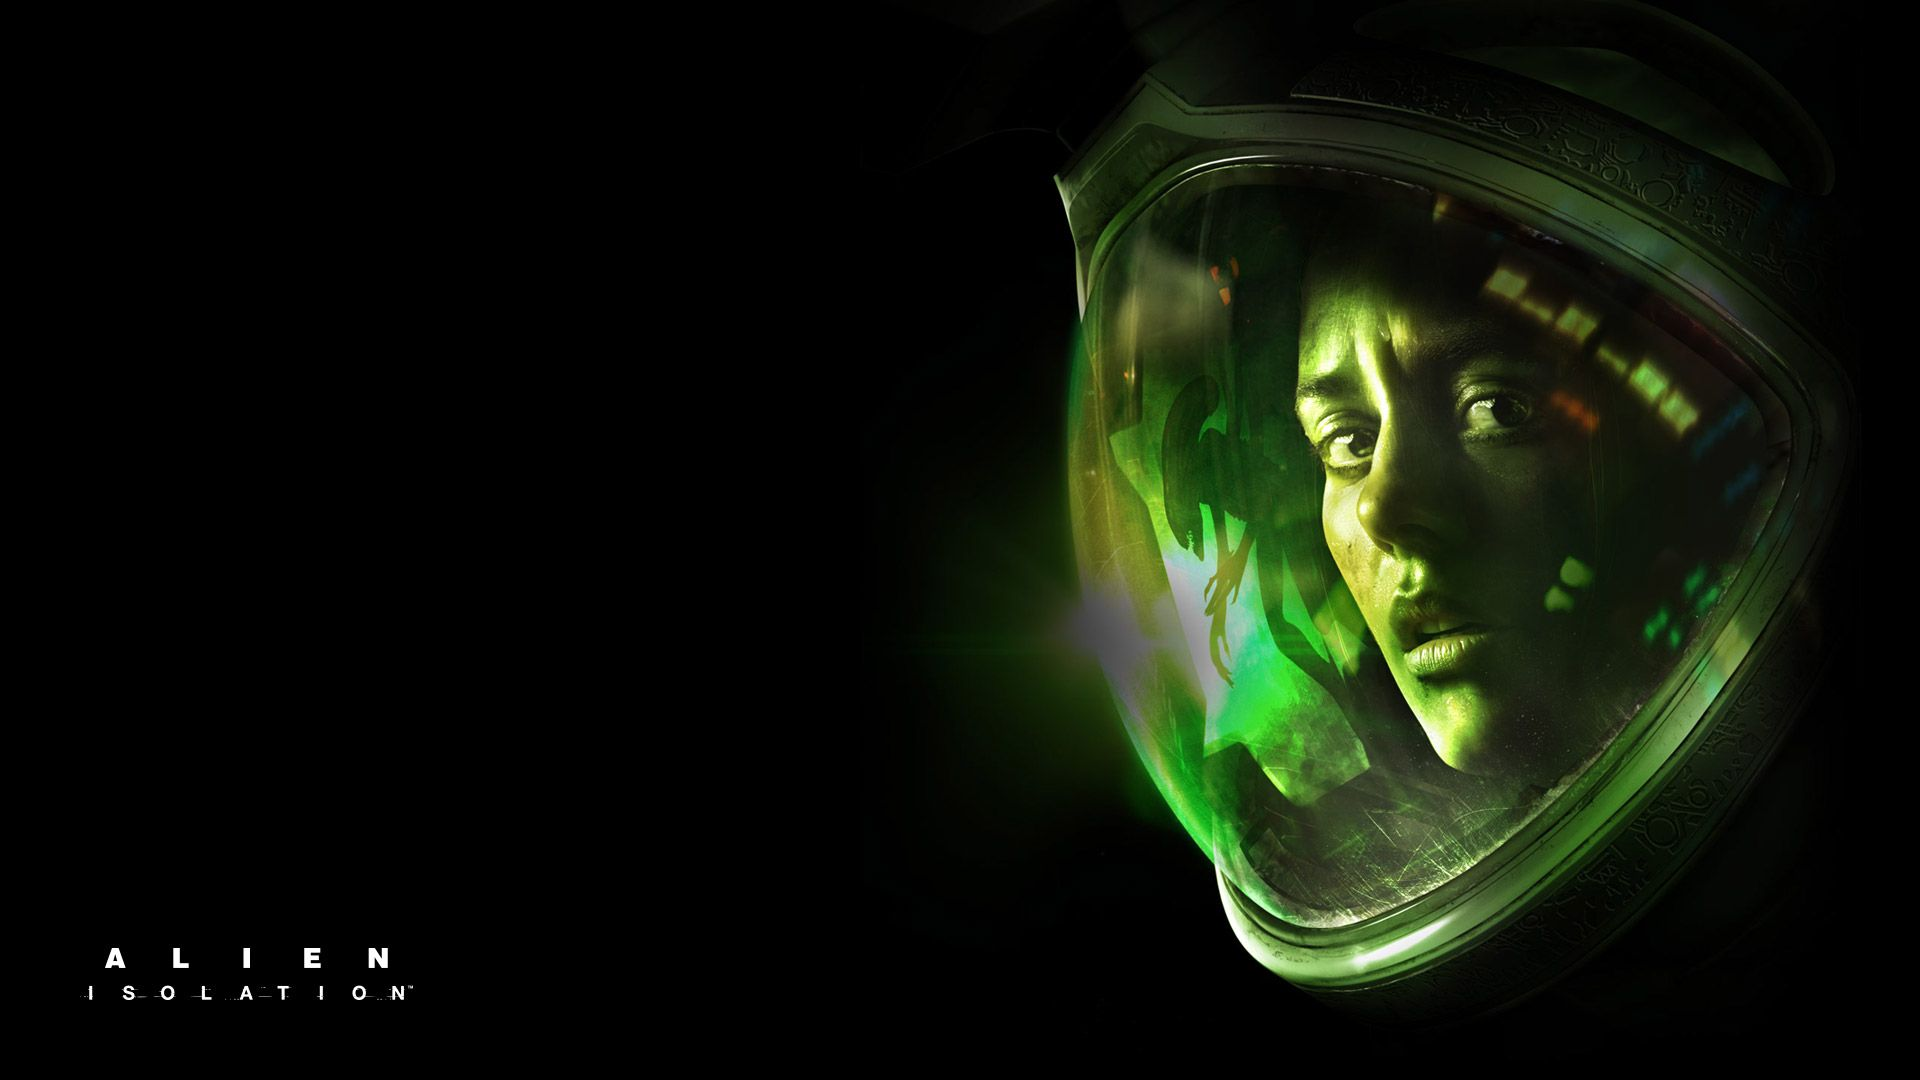 Amandaripley Alienisolation Siguenos En Twitter Https Twitter Com Ts Videojuegos Y En Www Todosobrevid Alien Isolation Alien Isolation Game Alien Pictures